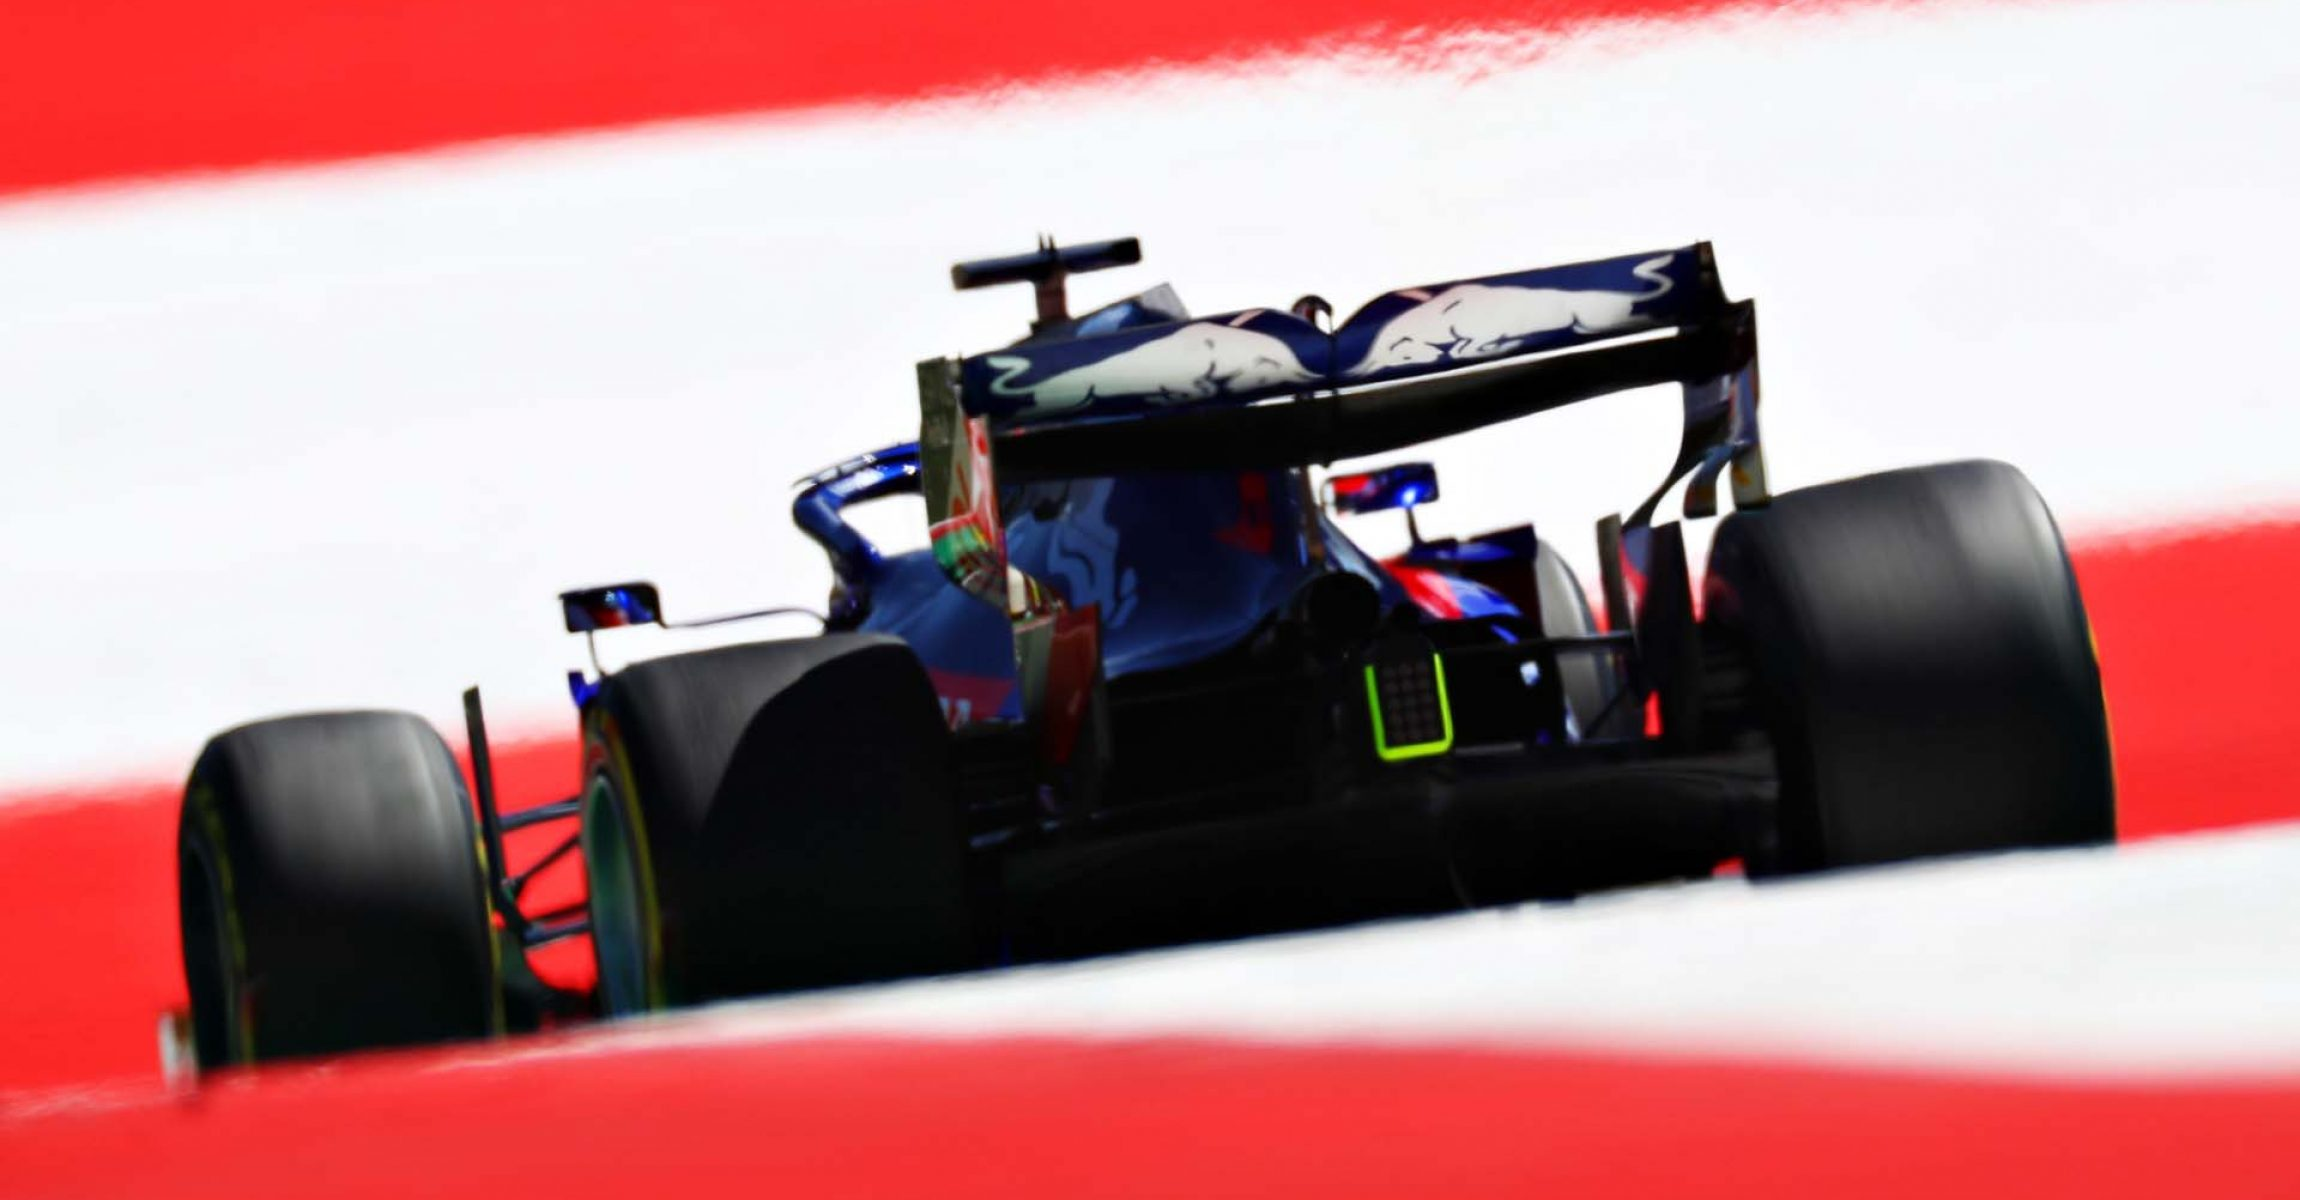 SPIELBERG, AUSTRIA - JUNE 28: Daniil Kvyat driving the (26) Scuderia Toro Rosso STR14 Honda on track during practice for the F1 Grand Prix of Austria at Red Bull Ring on June 28, 2019 in Spielberg, Austria. (Photo by Mark Thompson/Getty Images) // Getty Images / Red Bull Content Pool  // AP-1ZSMMMKMD2111 // Usage for editorial use only // Please go to www.redbullcontentpool.com for further information. //